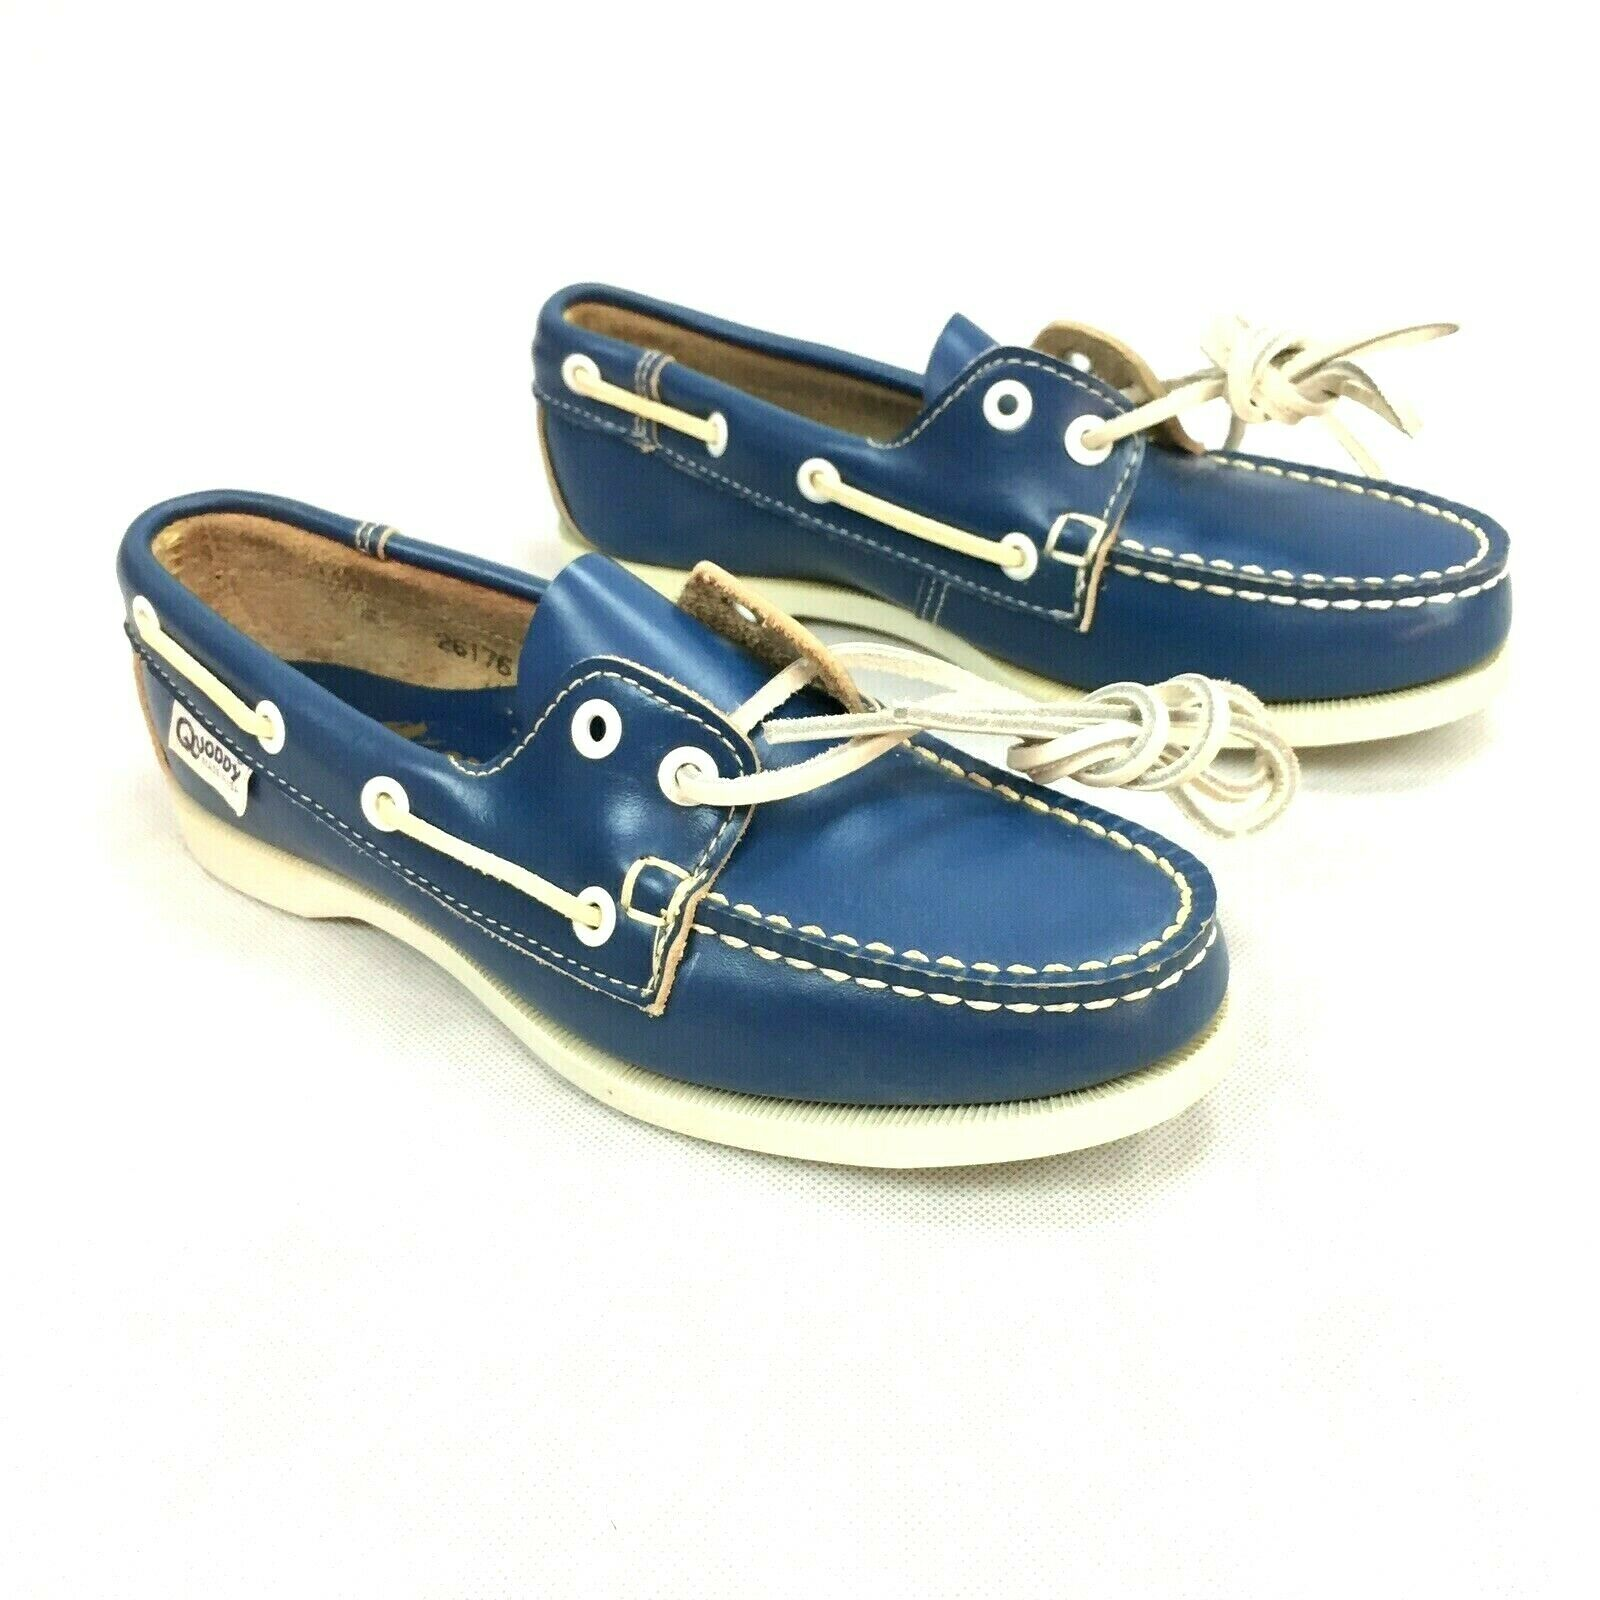 Quoddy Leather Moccasins Handmade blu - donna's Dimensione 6M - USA